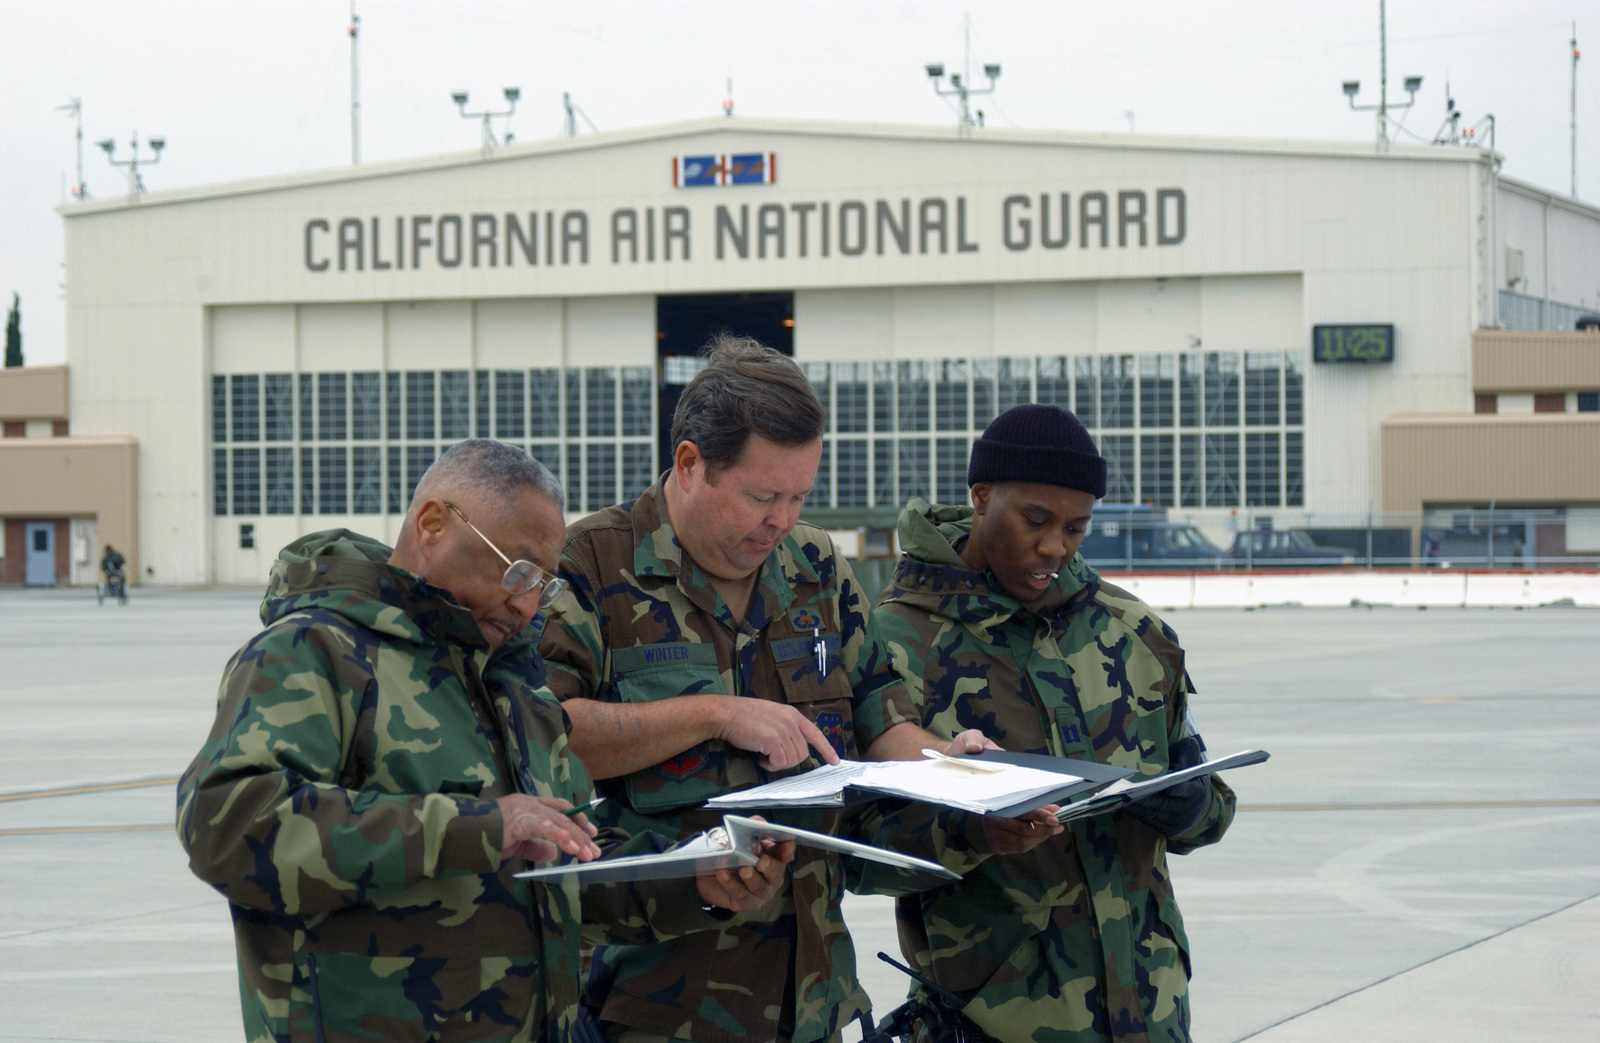 CAPT. Charles Hall (right), SENIOR MASTER SGT. Brad Winter (center), and CHIEF MASTER SGT. Willis Mucelroy (left), all members of the 144th Fighter Wing, Maintenance Operation Center, California Air National Guard, review a flight schedule during an Operation Readiness Exercise at Fresno Air National Guard Base at Fresno Yosemite International Aiport, Calif., on Nov. 3, 2004. (USAF PHOTO by MASTER SGT. Matthew P.Millson) (Released)